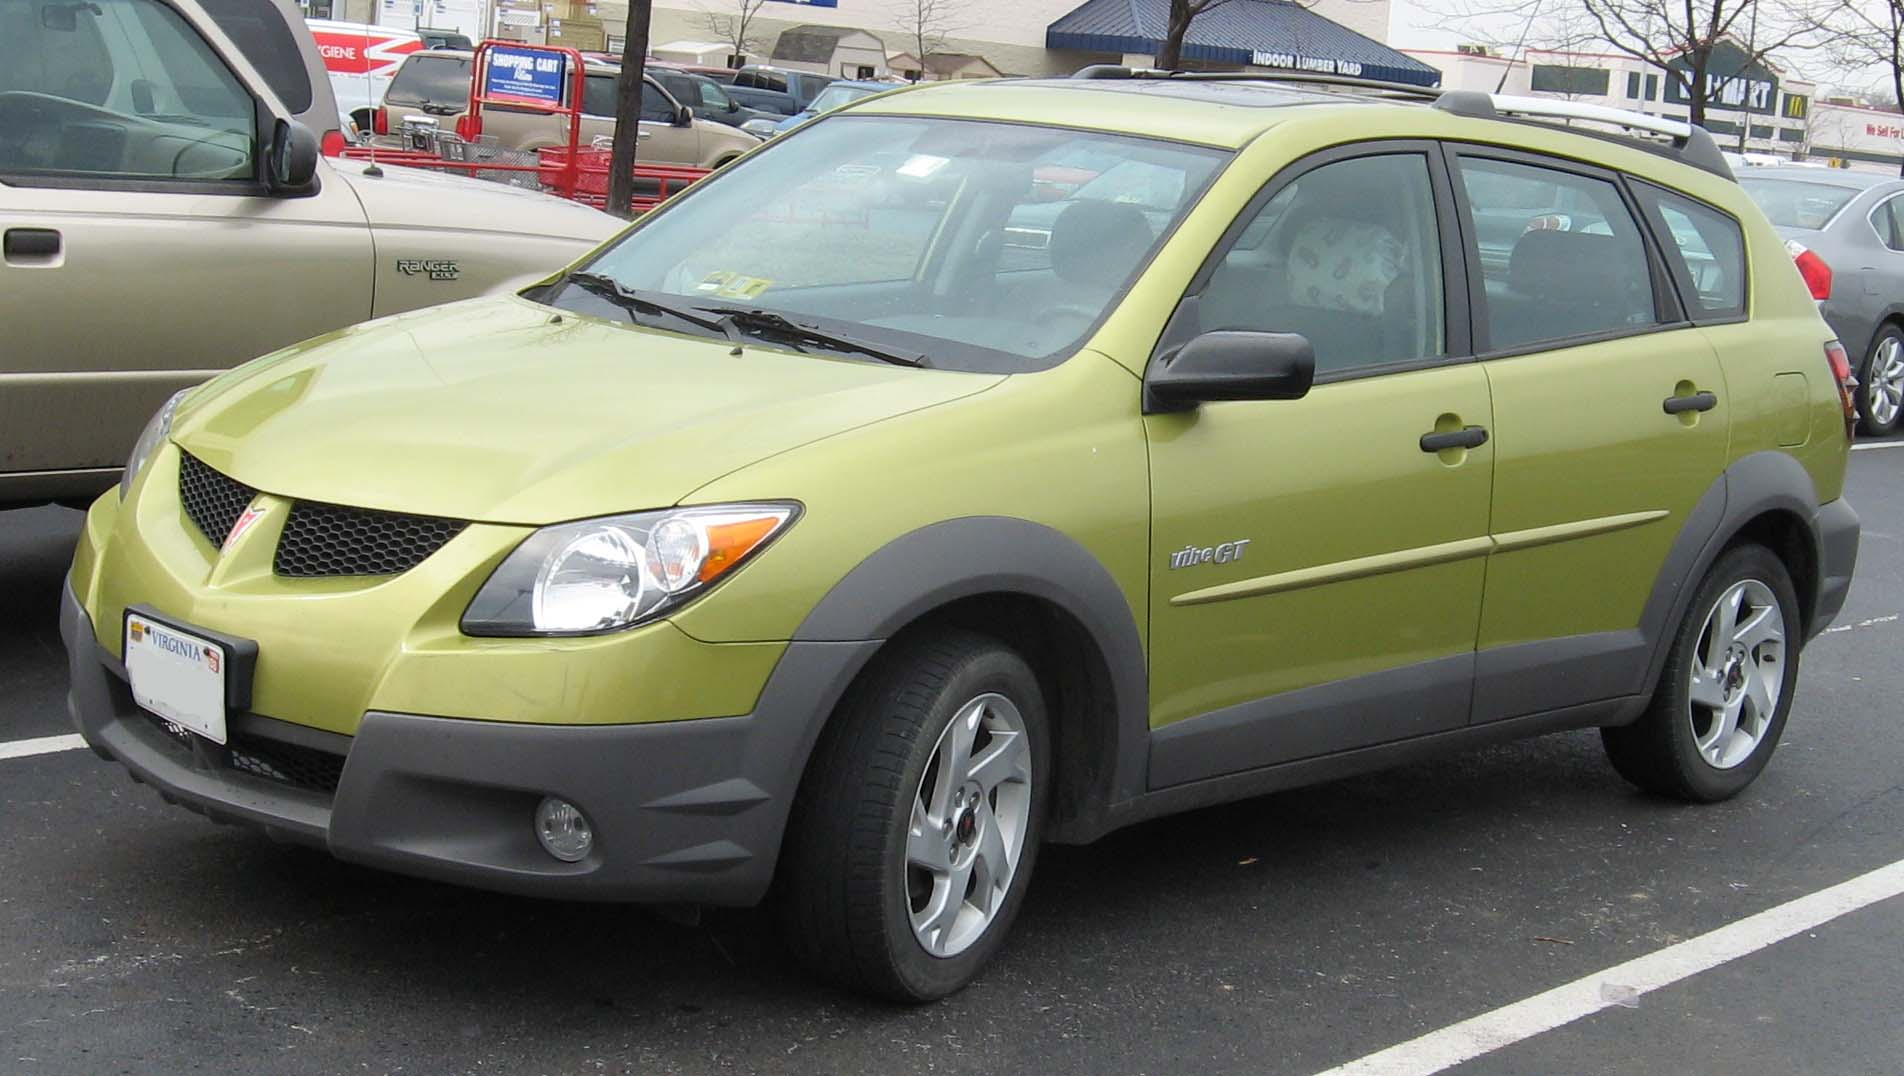 Pontiac Vibe   pictures, information and specs - Auto-Database.com